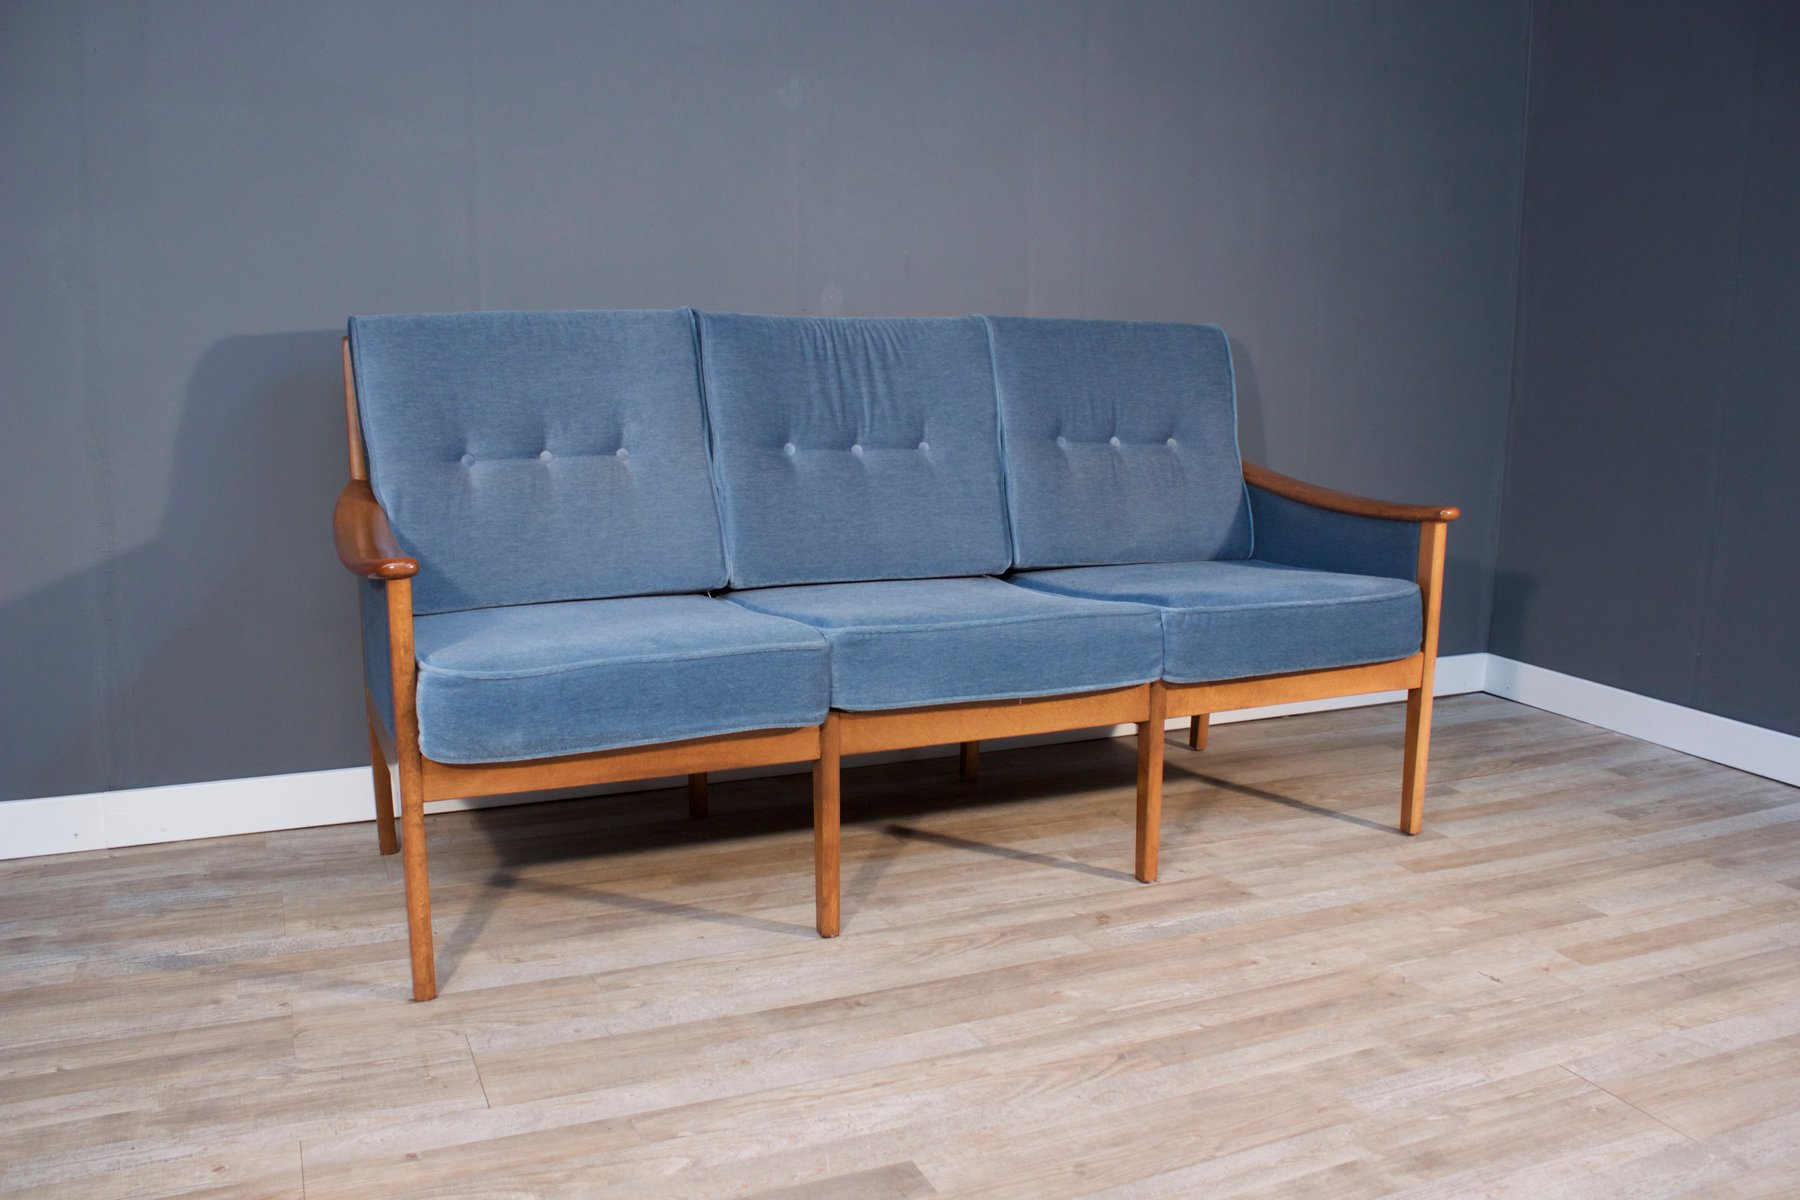 Walter Knoll Sofa Vintage Three Seater Sofa By Walter Knoll